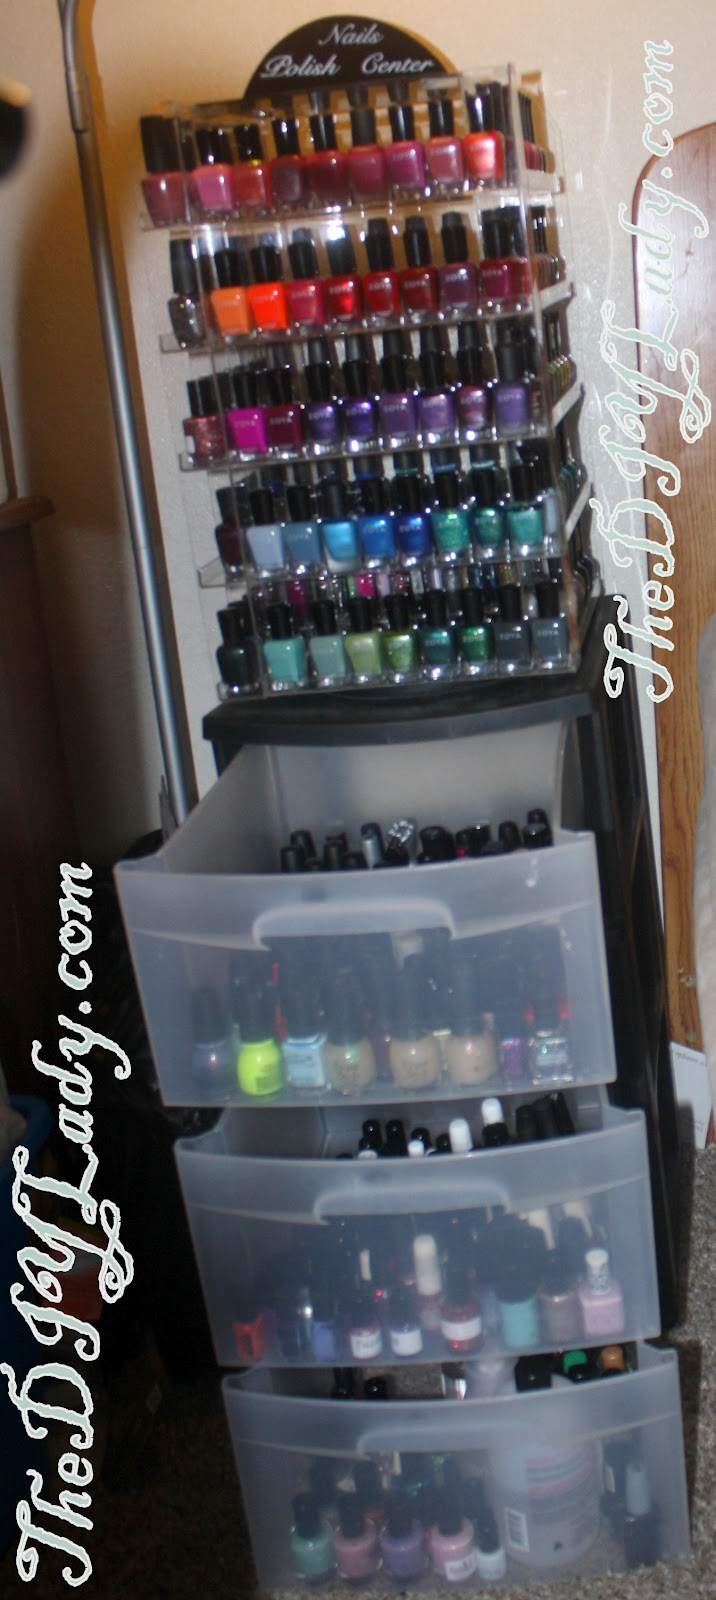 Fancy clear matte nail polish walmart inspiration nail art ideas the do it yourself lady my nail polish storage got an upgrade solutioingenieria Gallery